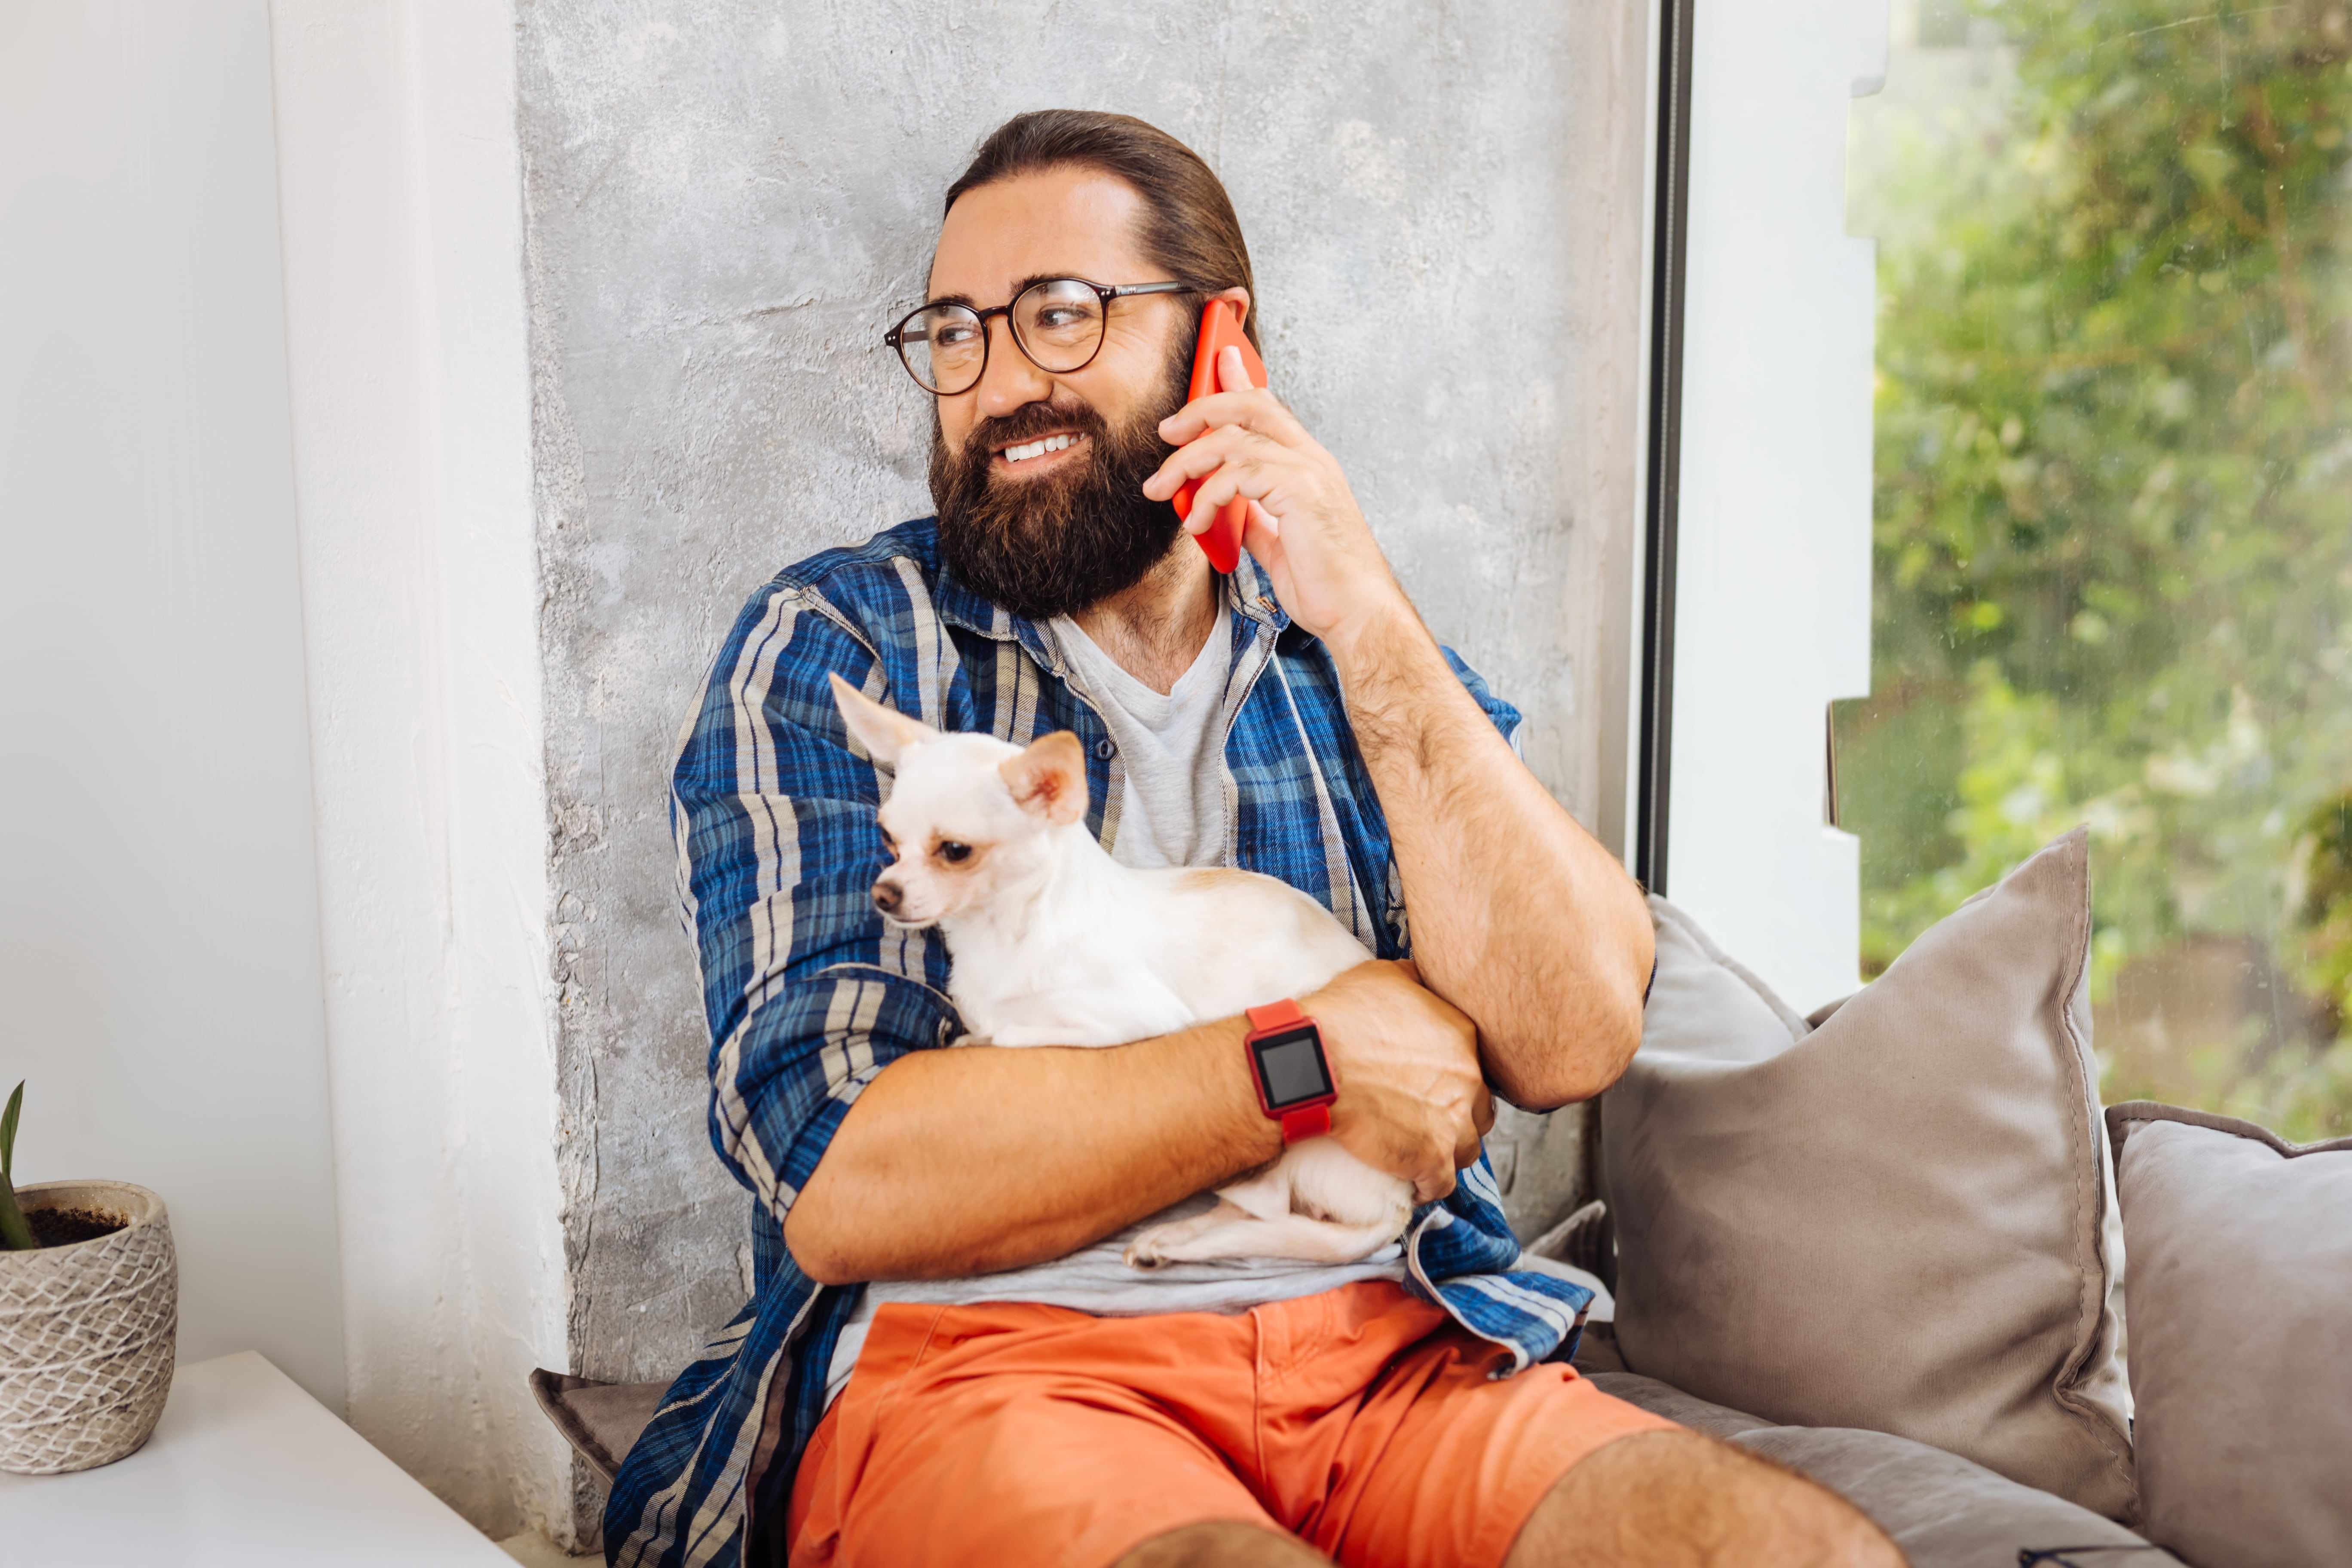 calling-wife-dark-eyed-smiling-man-feeling-cheerful-while-calling-his-wife-while-holding-little-dog-min